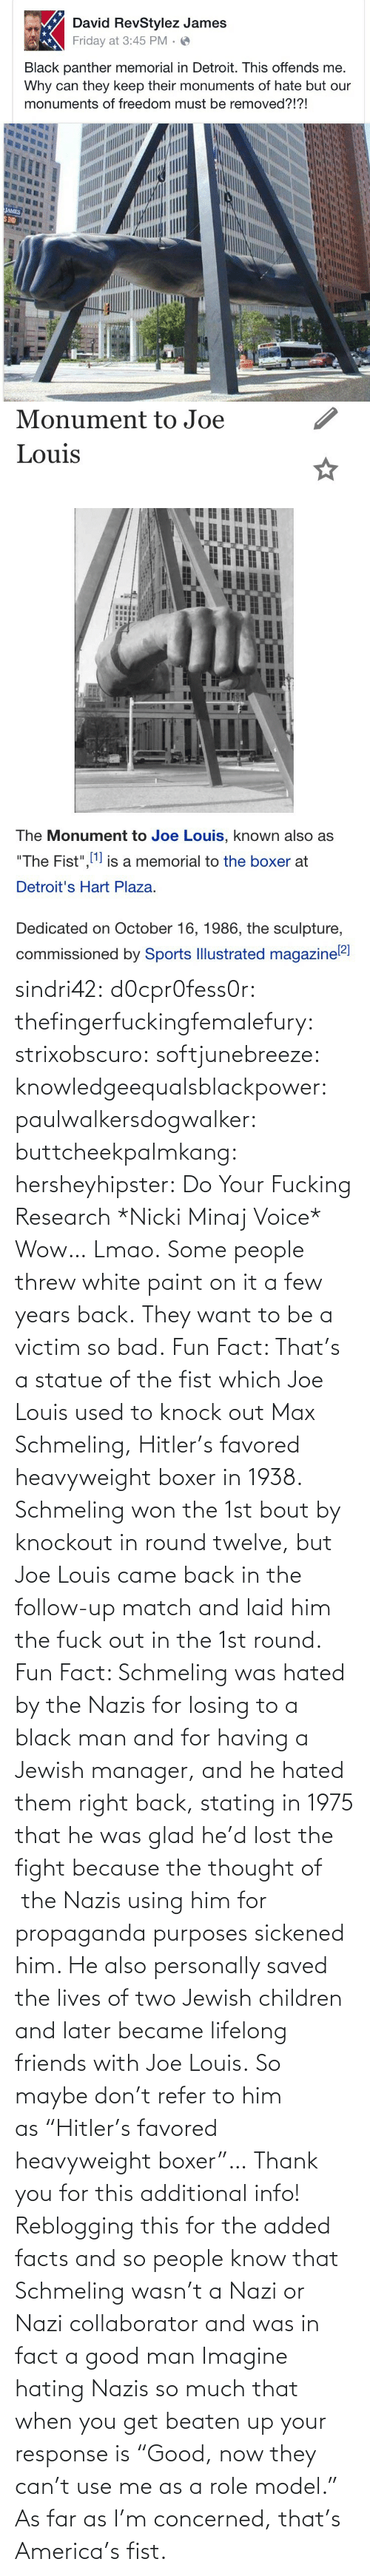 "know: sindri42:  d0cpr0fess0r:  thefingerfuckingfemalefury:  strixobscuro:  softjunebreeze:  knowledgeequalsblackpower:  paulwalkersdogwalker:   buttcheekpalmkang:   hersheyhipster:  Do Your Fucking Research *Nicki Minaj Voice*    Wow… Lmao.   Some people threw white paint on it a few years back.   They want to be a victim so bad.  Fun Fact: That's a statue of the fist which Joe Louis used to knock out Max Schmeling, Hitler's favored heavyweight boxer in 1938. Schmeling won the 1st bout by knockout in round twelve, but Joe Louis came back in the follow-up match and laid him the fuck out in the 1st round.  Fun Fact: Schmeling was hated by the Nazis for losing to a black man and for having a Jewish manager, and he hated them right back, stating in 1975 that he was glad he'd lost the fight because the thought of  the Nazis using him for propaganda purposes sickened him. He also personally saved the lives of two Jewish children and later became lifelong friends with Joe Louis. So maybe don't refer to him as ""Hitler's favored heavyweight boxer""…  Thank you for this additional info! Reblogging this for the added facts and so people know that Schmeling wasn't a Nazi or Nazi collaborator and was in fact a good man   Imagine hating Nazis so much that when you get beaten up your response is ""Good, now they can't use me as a role model.""  As far as I'm concerned, that's America's fist."